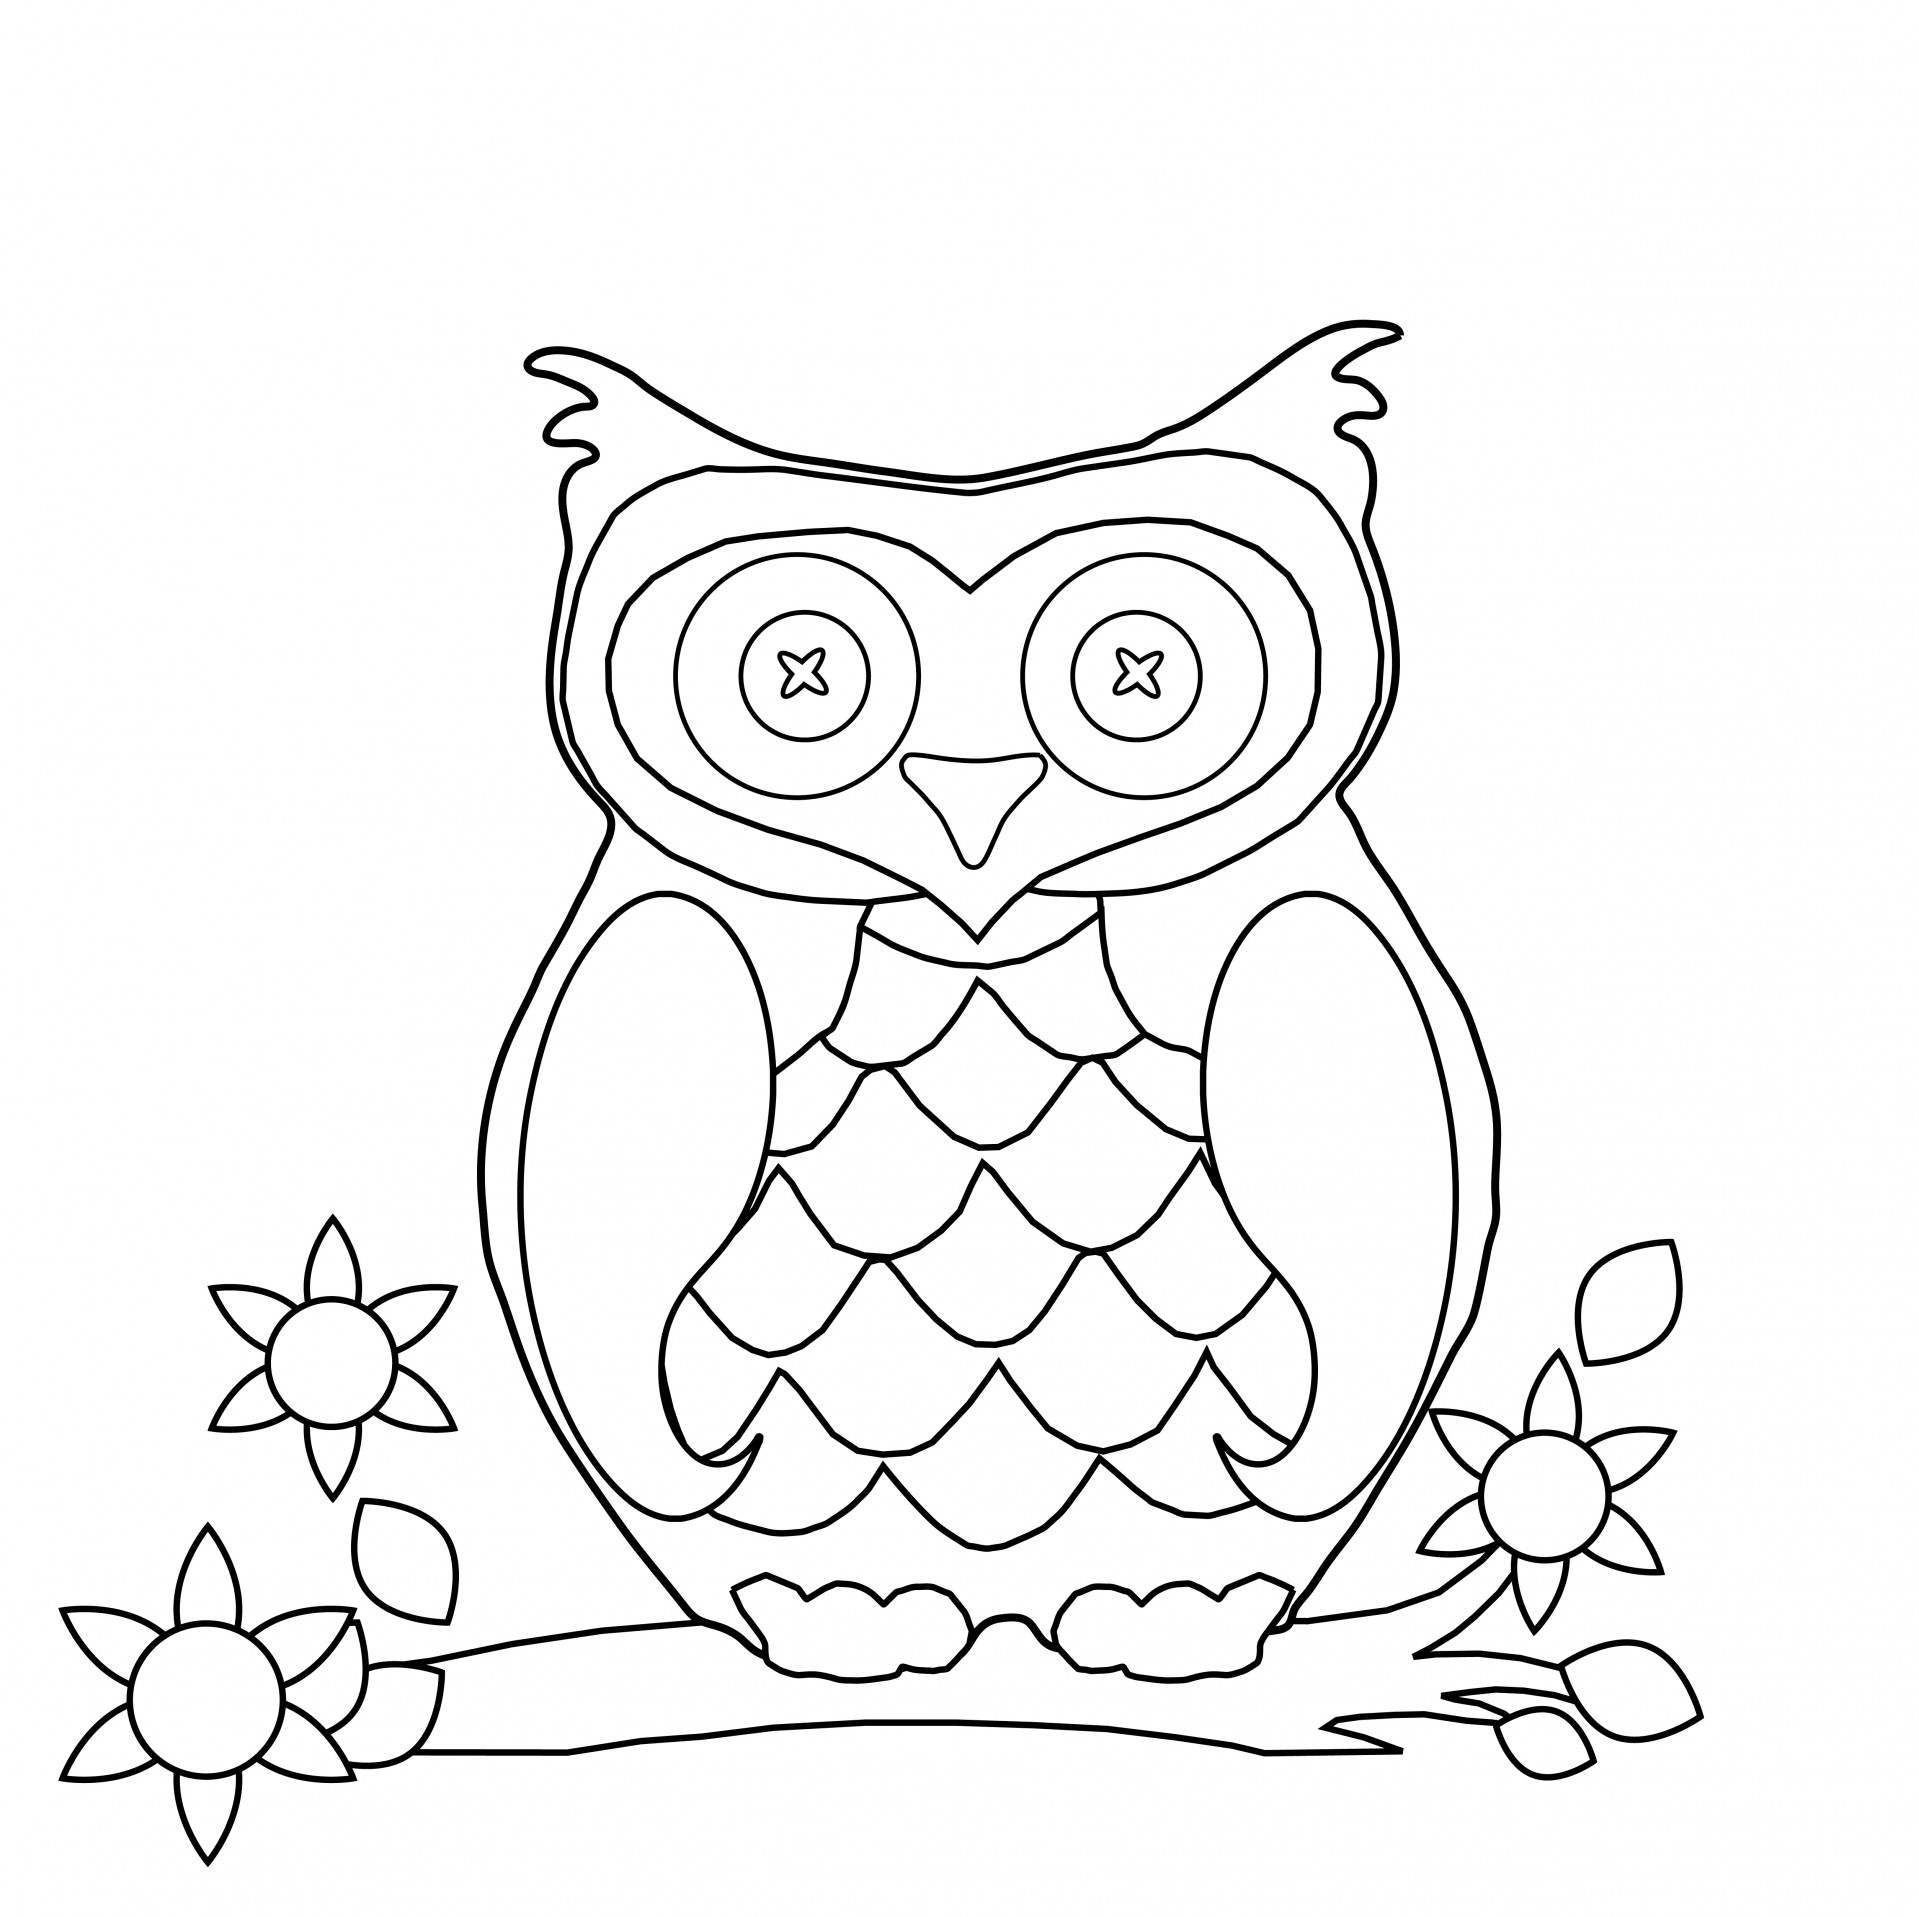 1919x1917 Owl Coloring Page Clipart Free Stock Photo